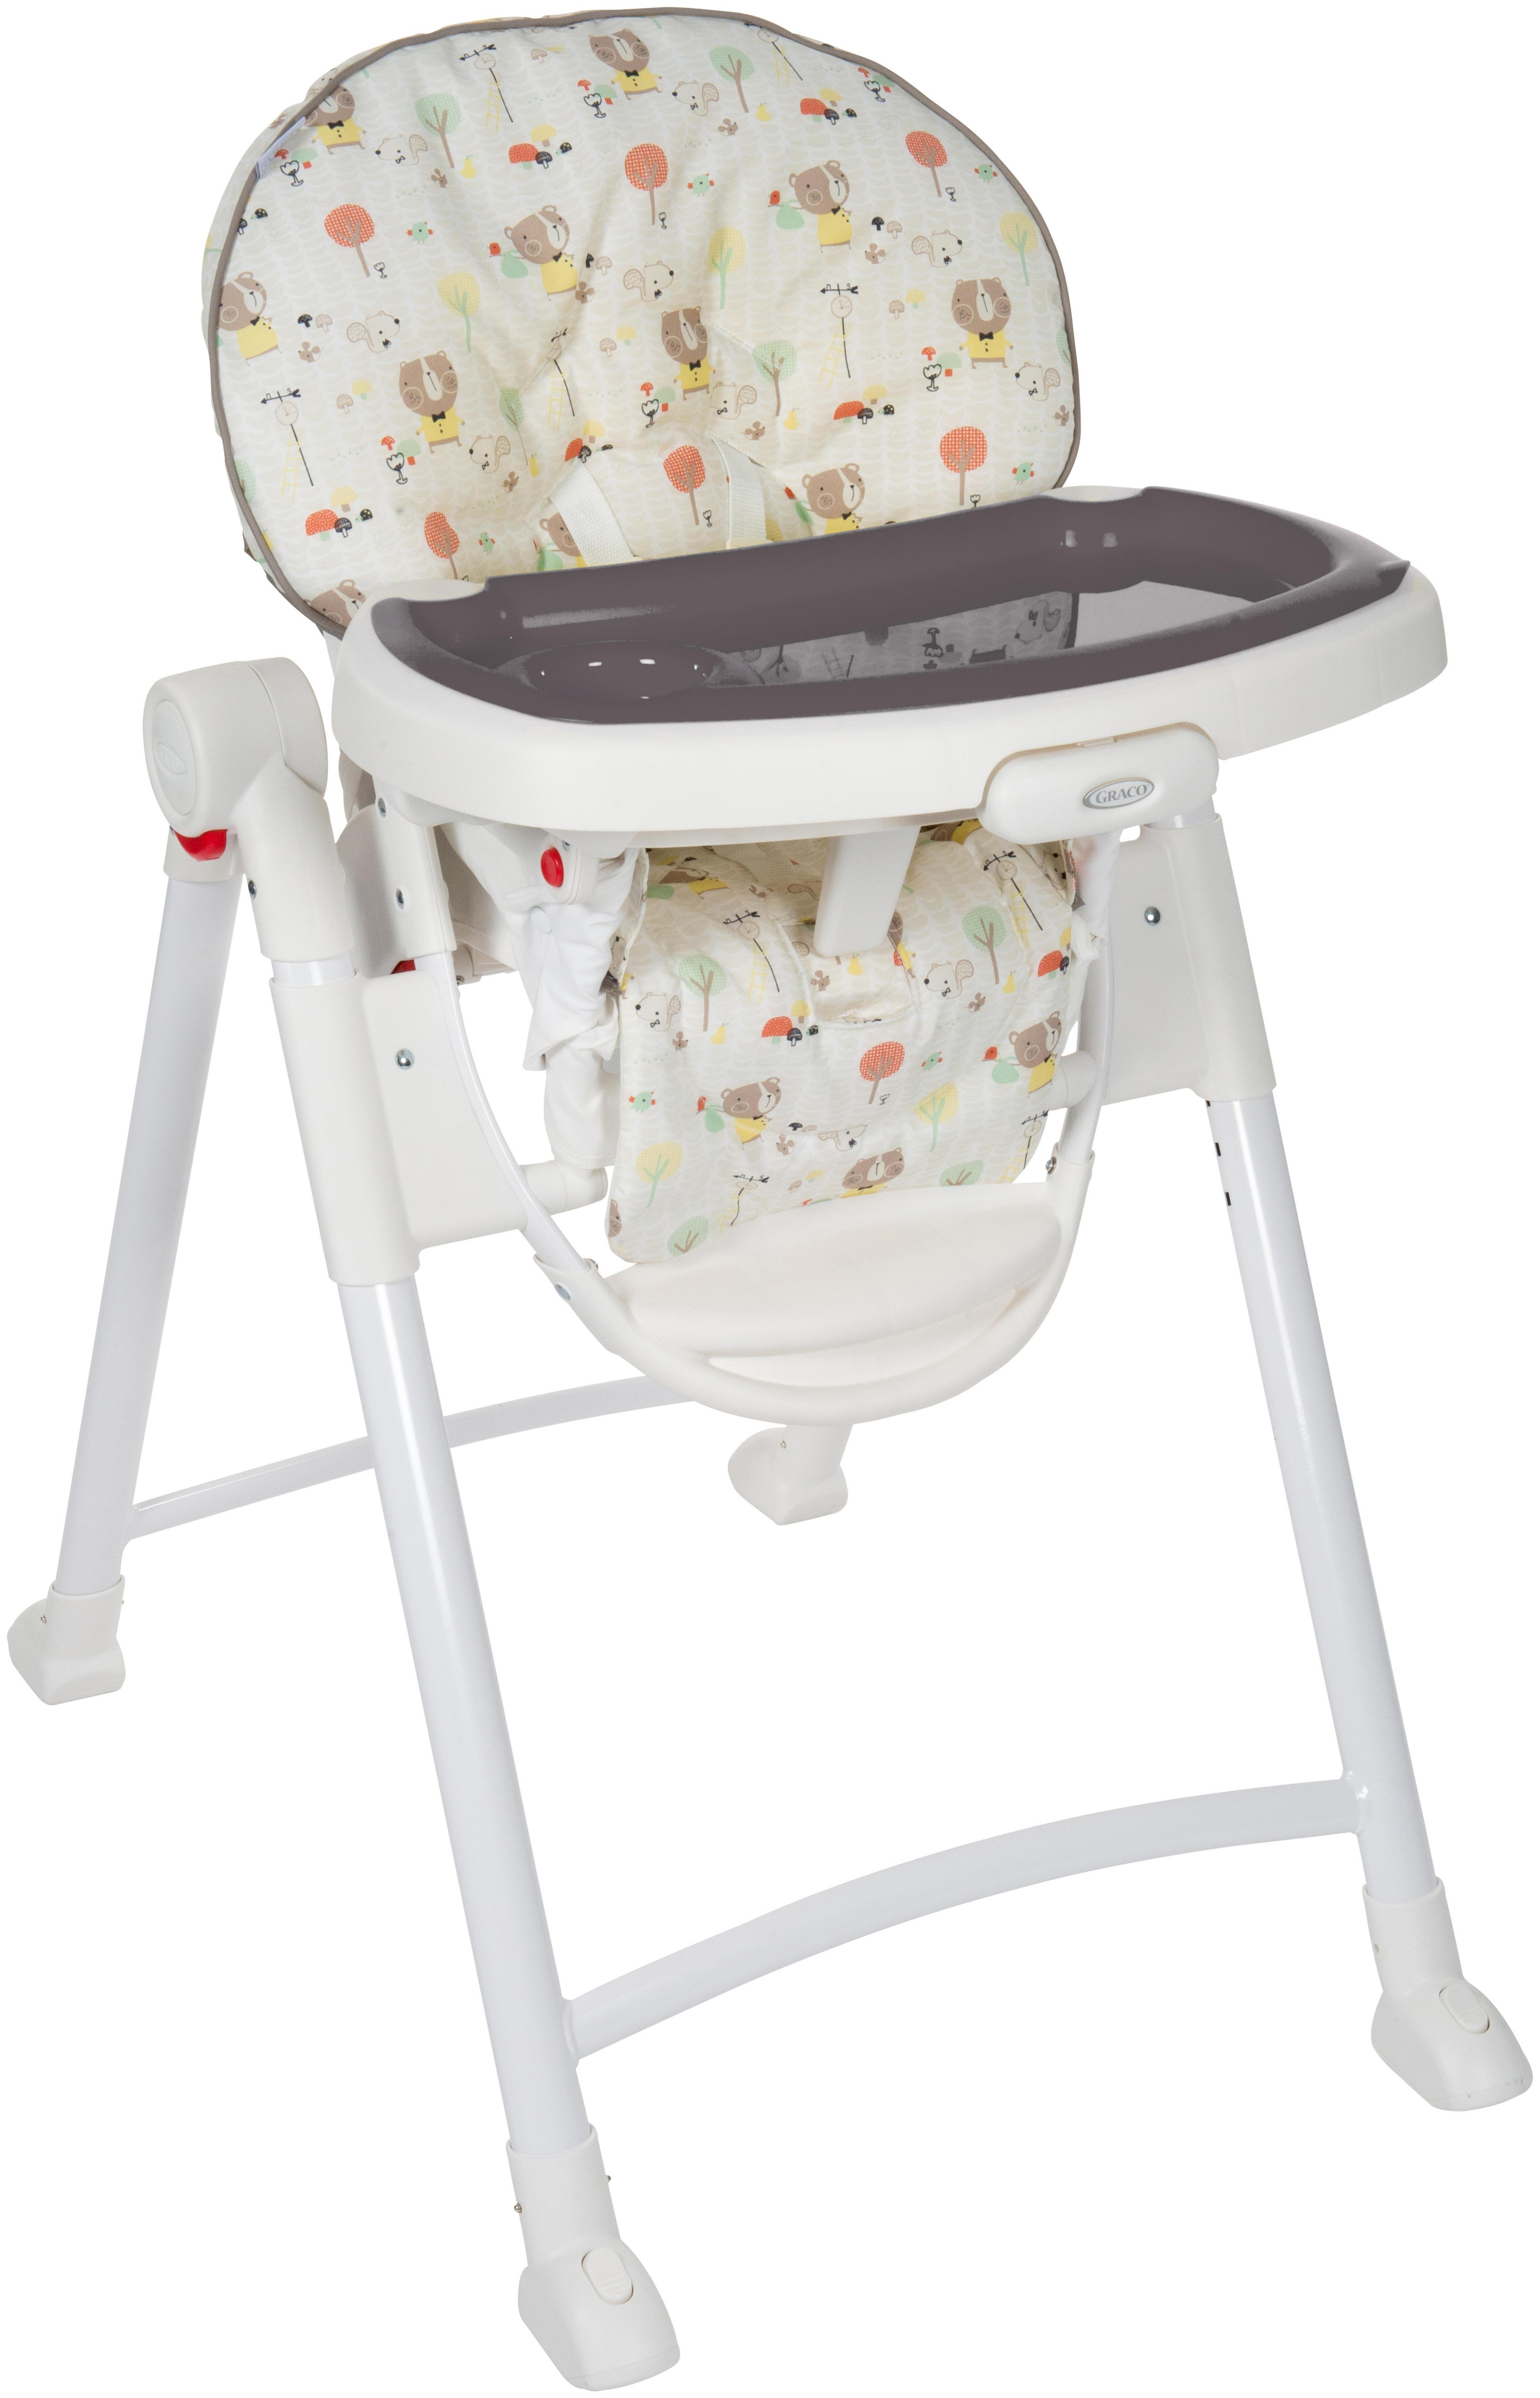 Image of Graco Contempo Ted and Coco High Chair.